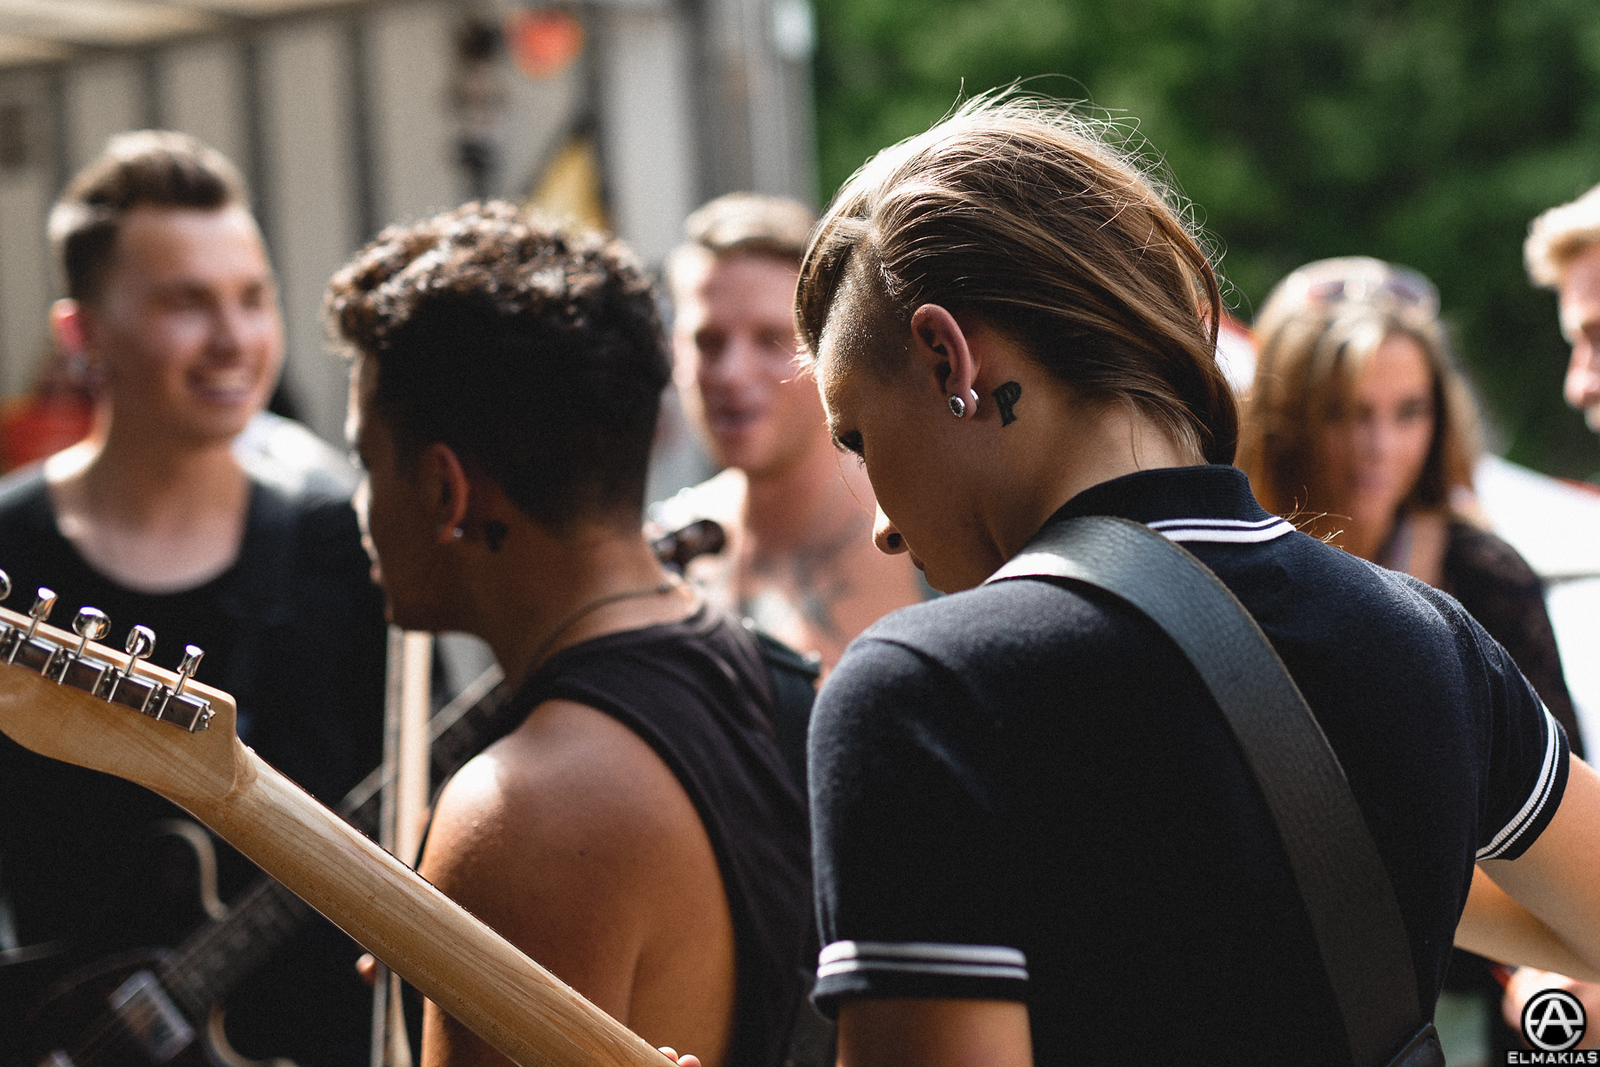 PVRIS before their set at Vans Warped Tour 2015 by Adam Elmakias